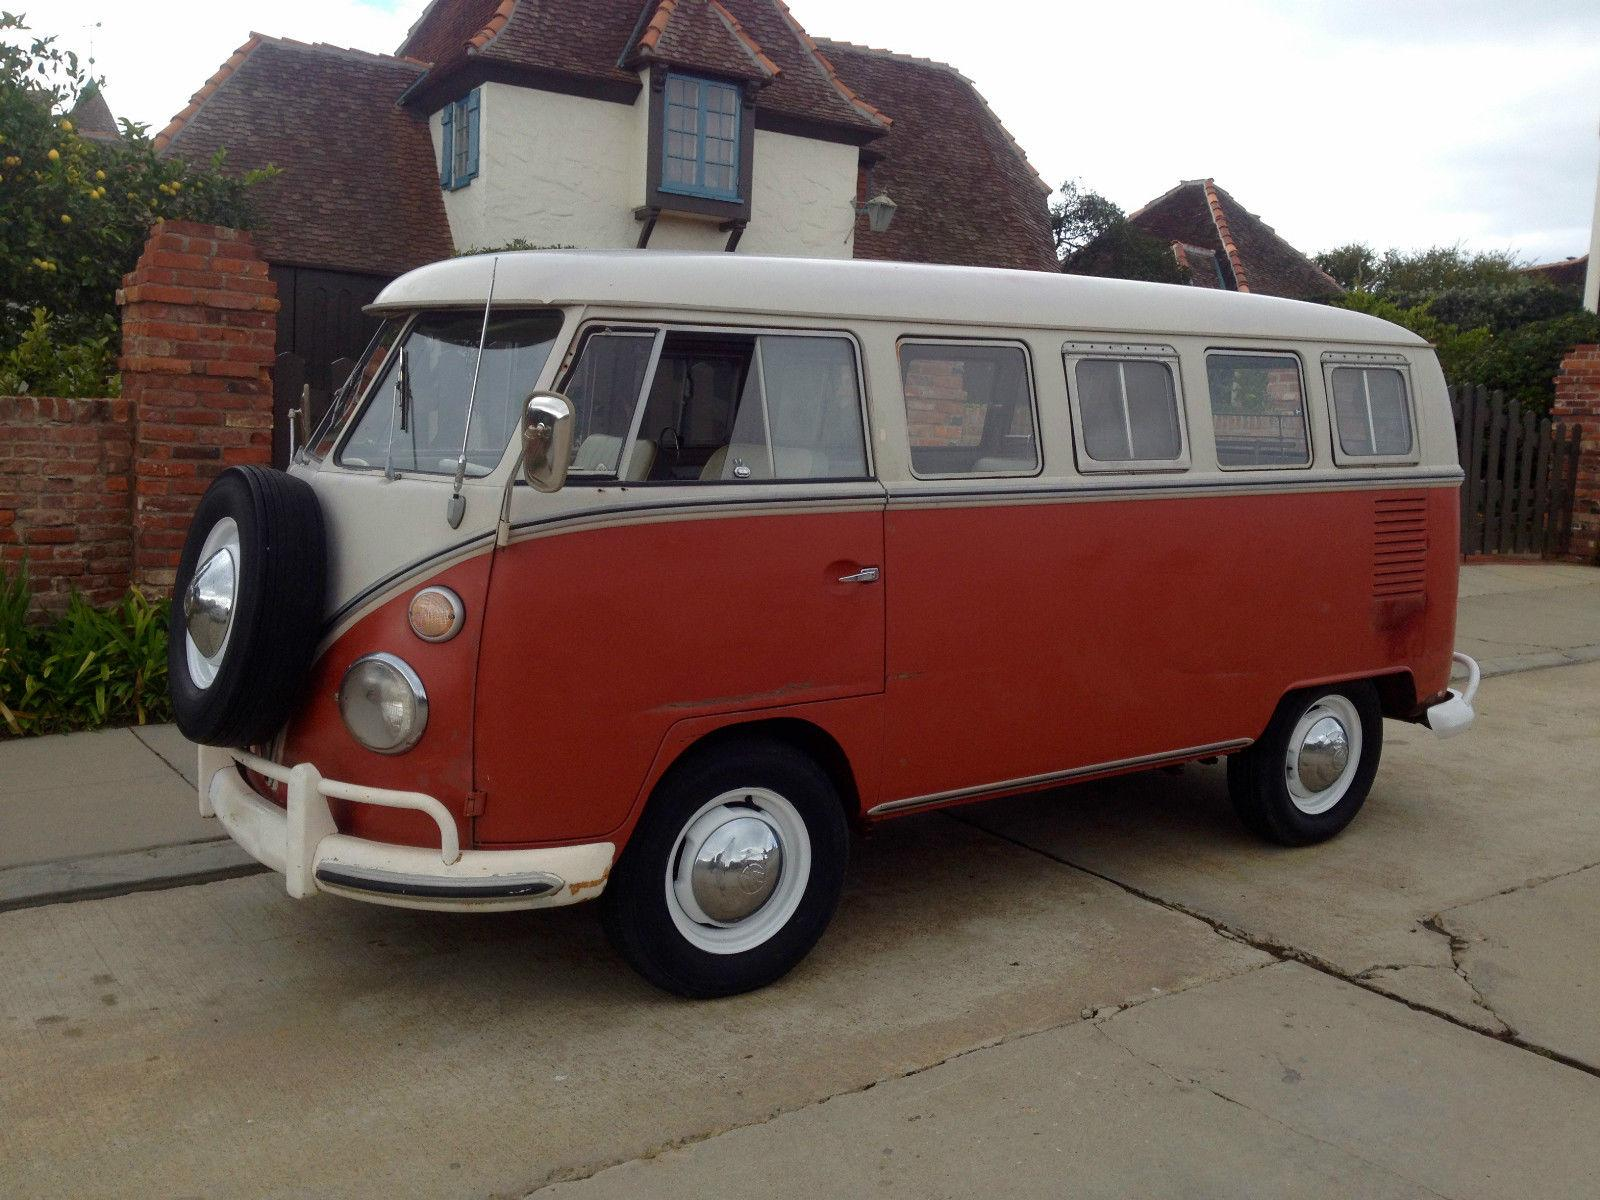 ever an other vw spirit part years pt turn camper and the conjure a copy bus most one vehicles produced few icon dsc freedom birth wild heads volkswagen of iconic ability to have is van